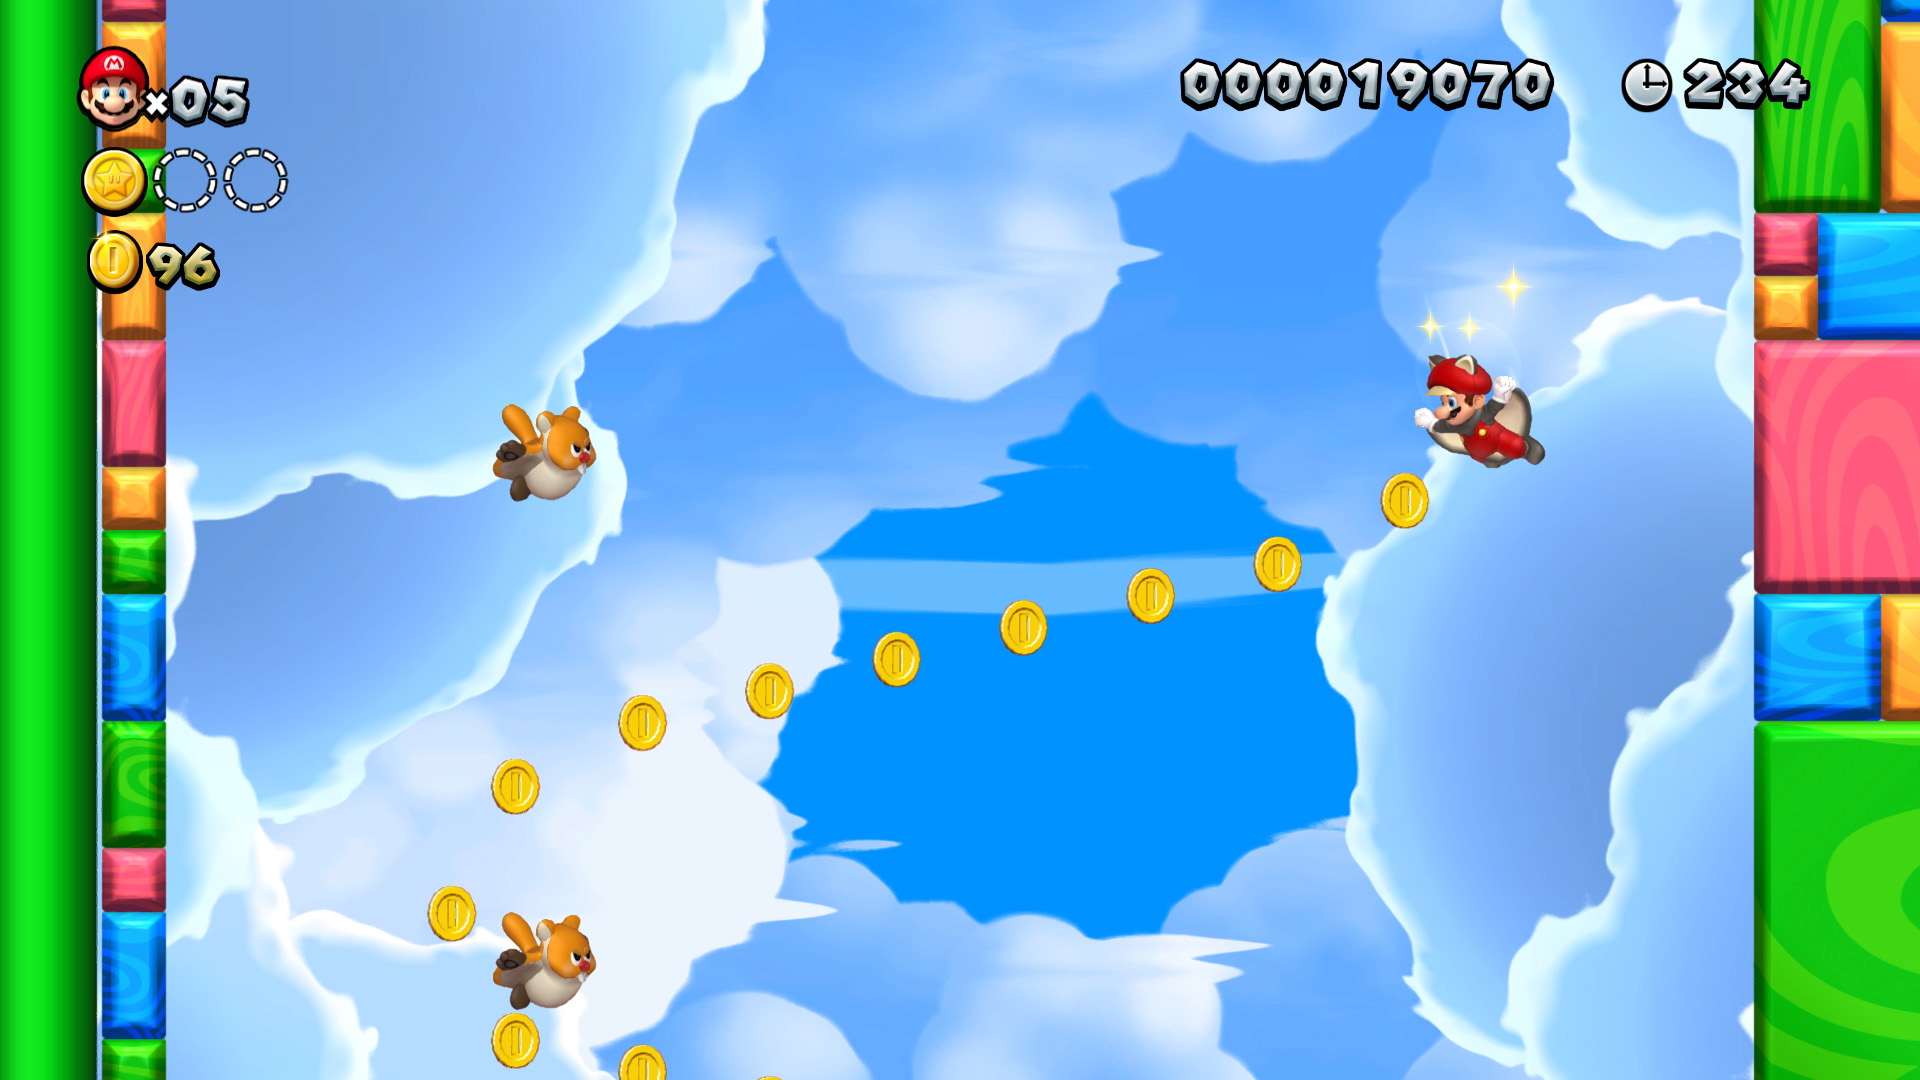 New Super Mario Bros U Deluxe (Switch) review – Tired Old Hack